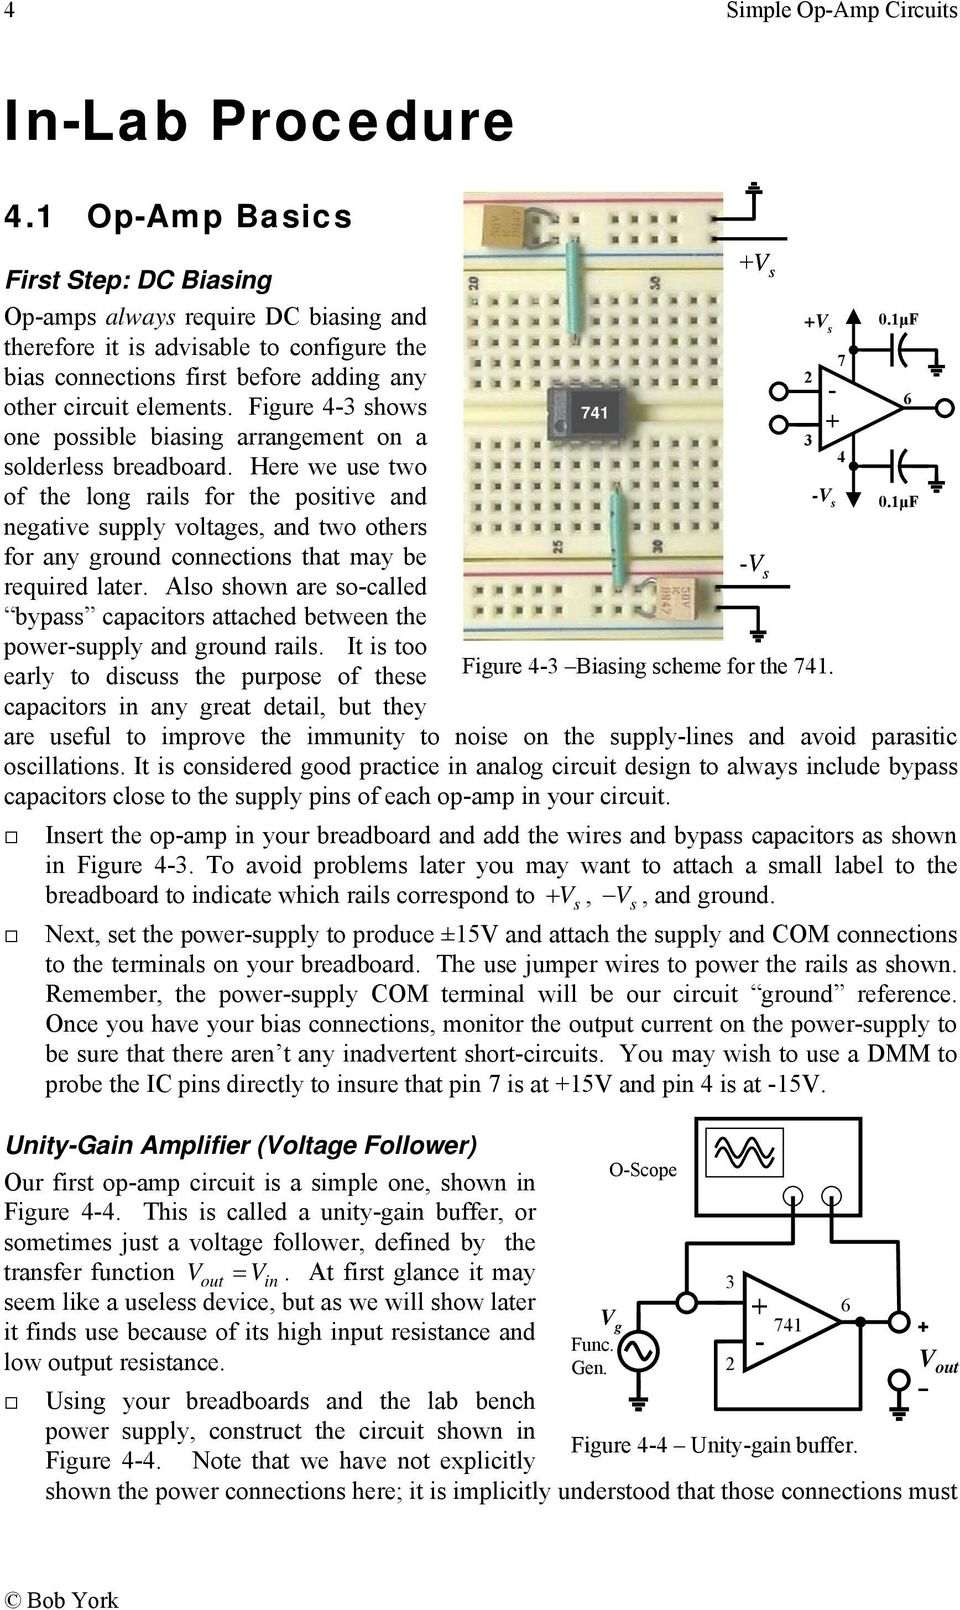 Simple Op Amp Circuits Pdf Here We Use Two 4 Of The Long Rails For Positive And Negative Supply Voltages 5 Opamp